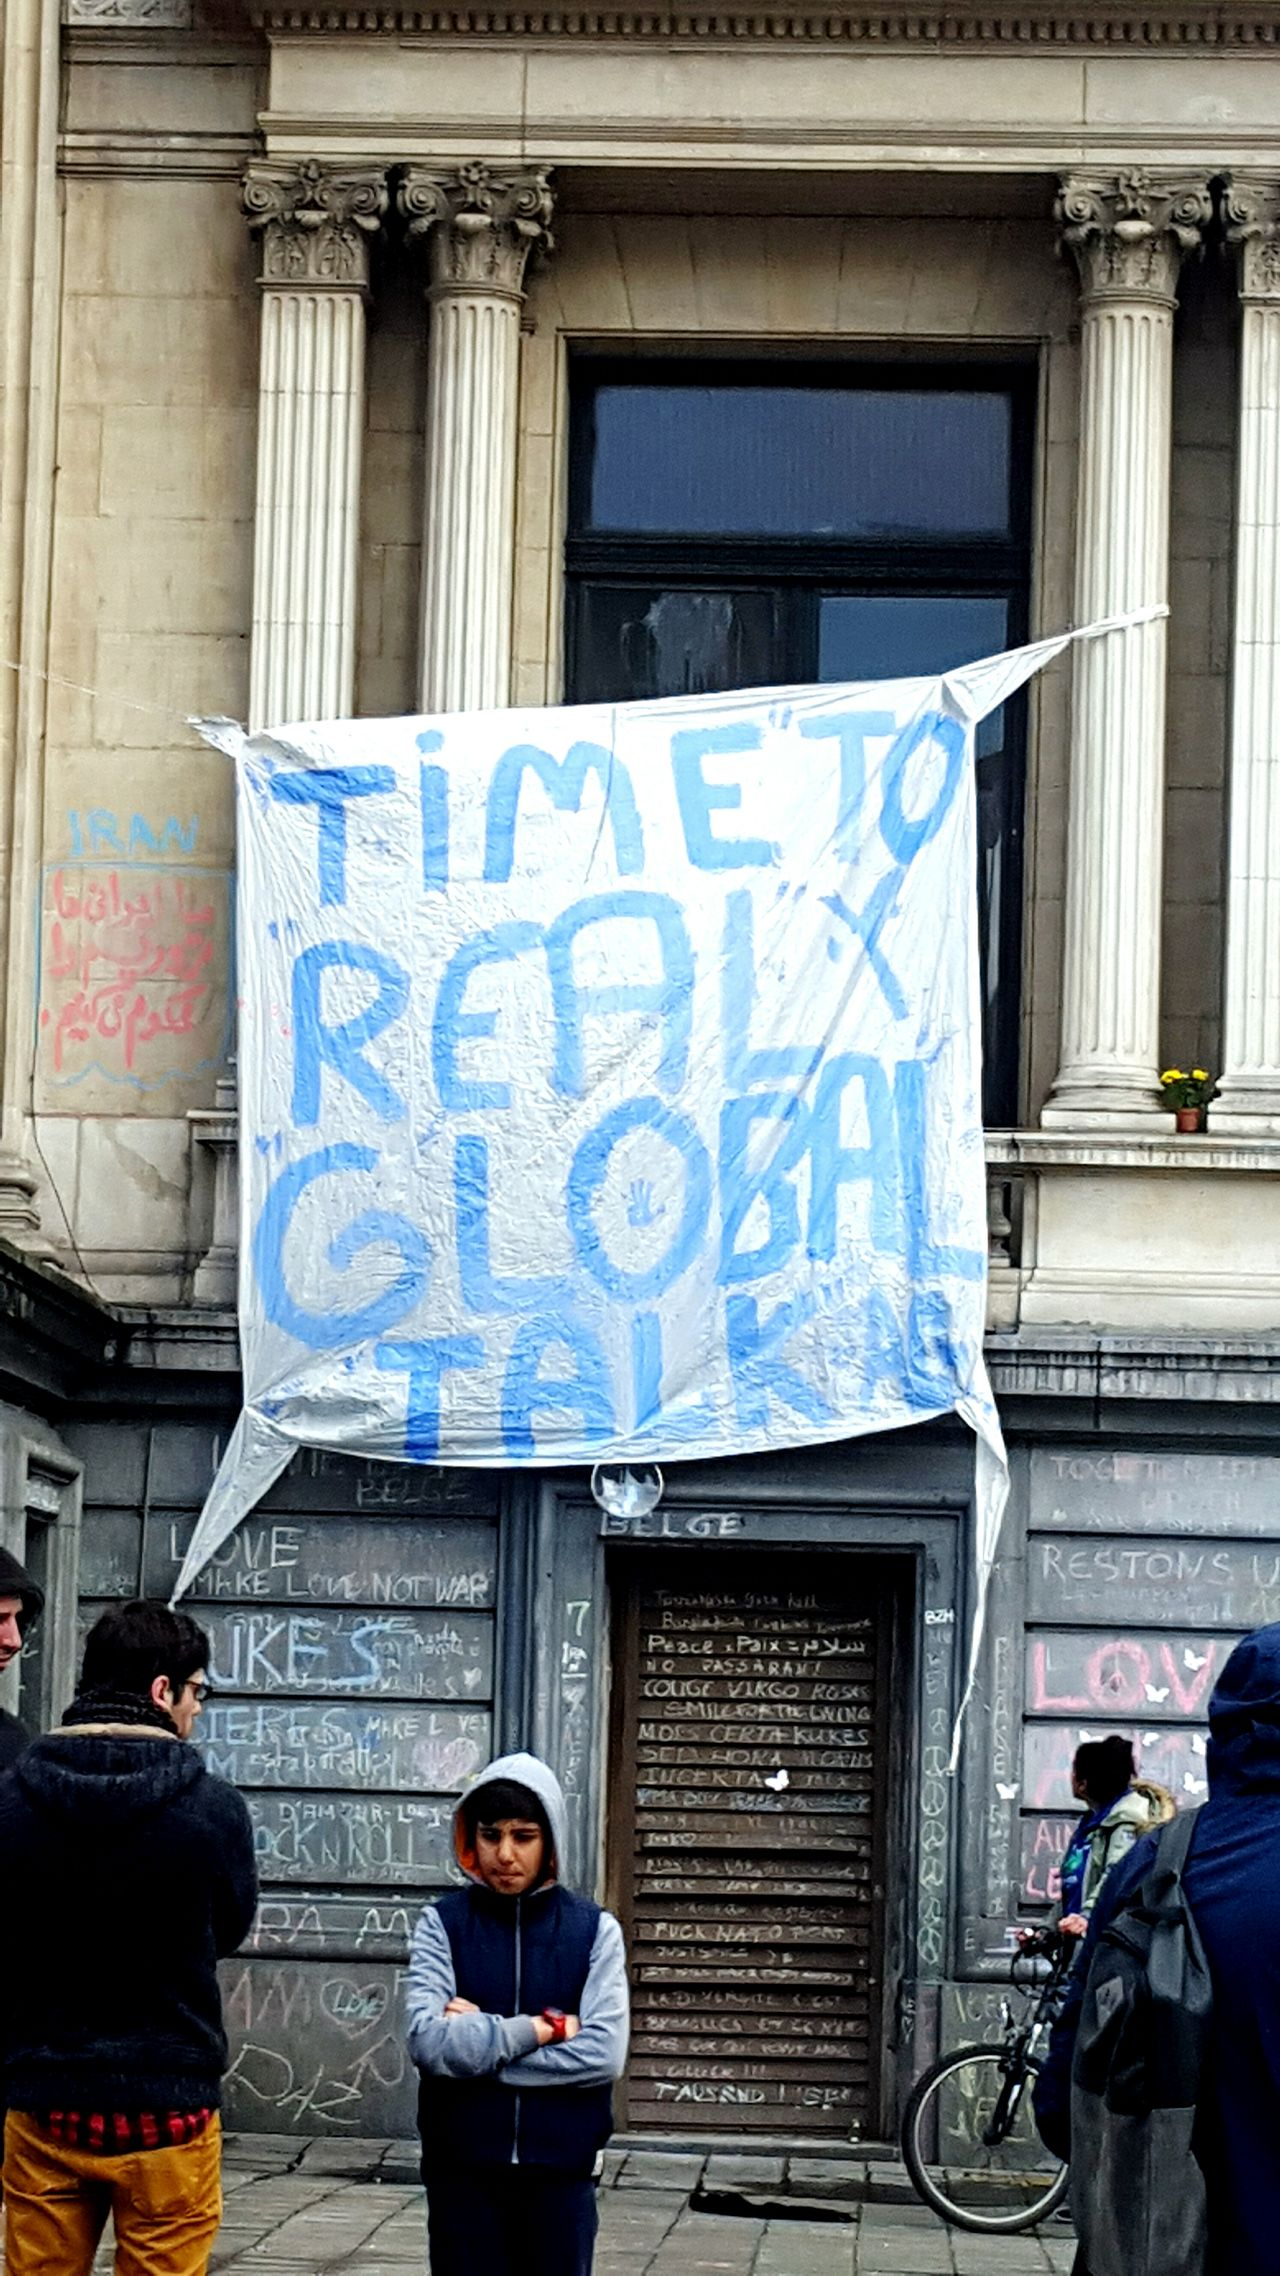 """Time to real global talk"" Victims Terrorism People Capture The Moment Check This Out Photography Building Brussels Snapshot Streetphotography Street Voiceofthepeople Peace"